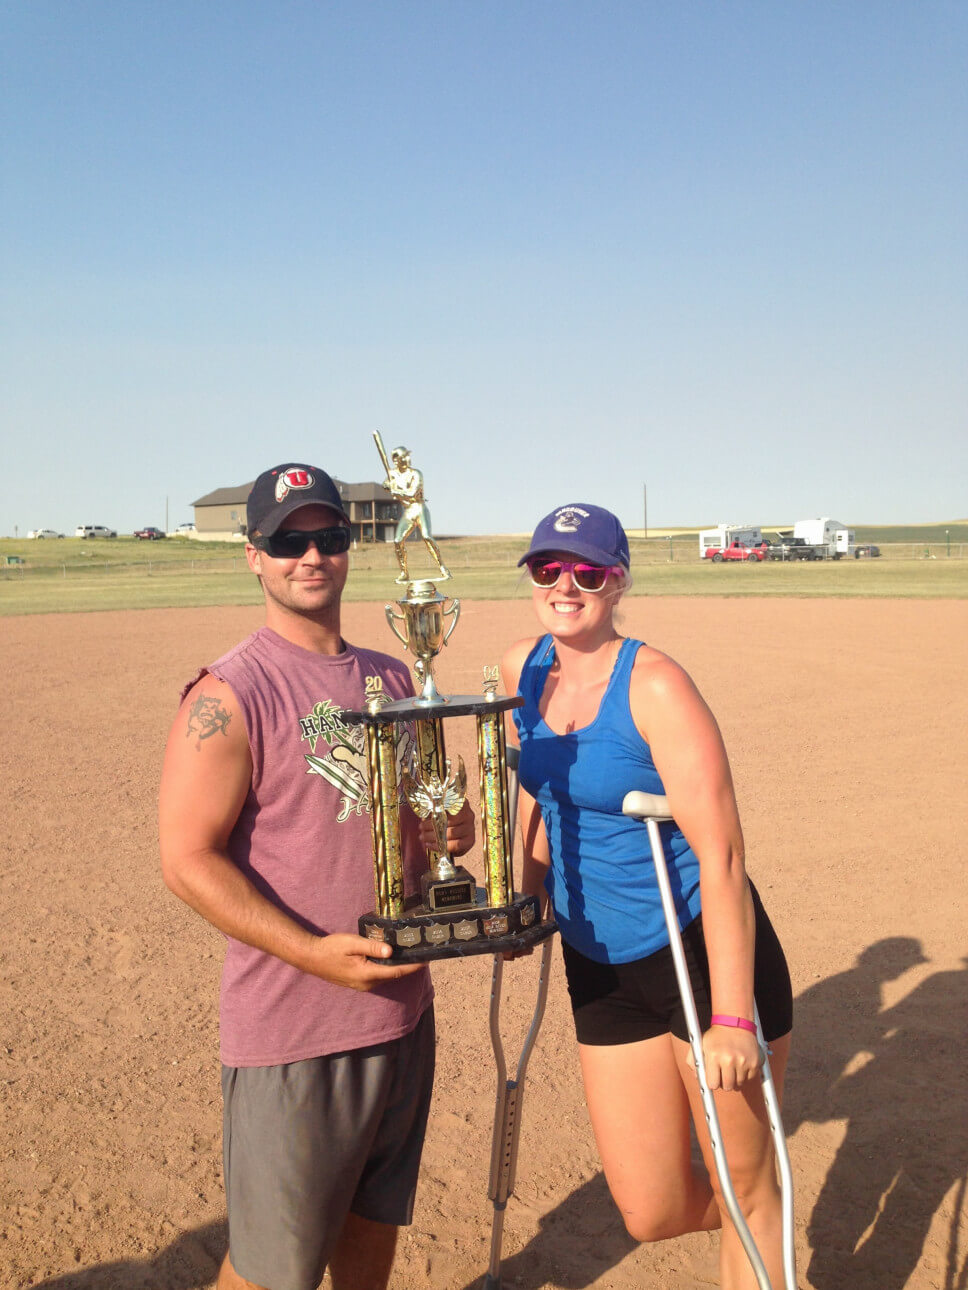 Softball, Crutches, and a Trophy